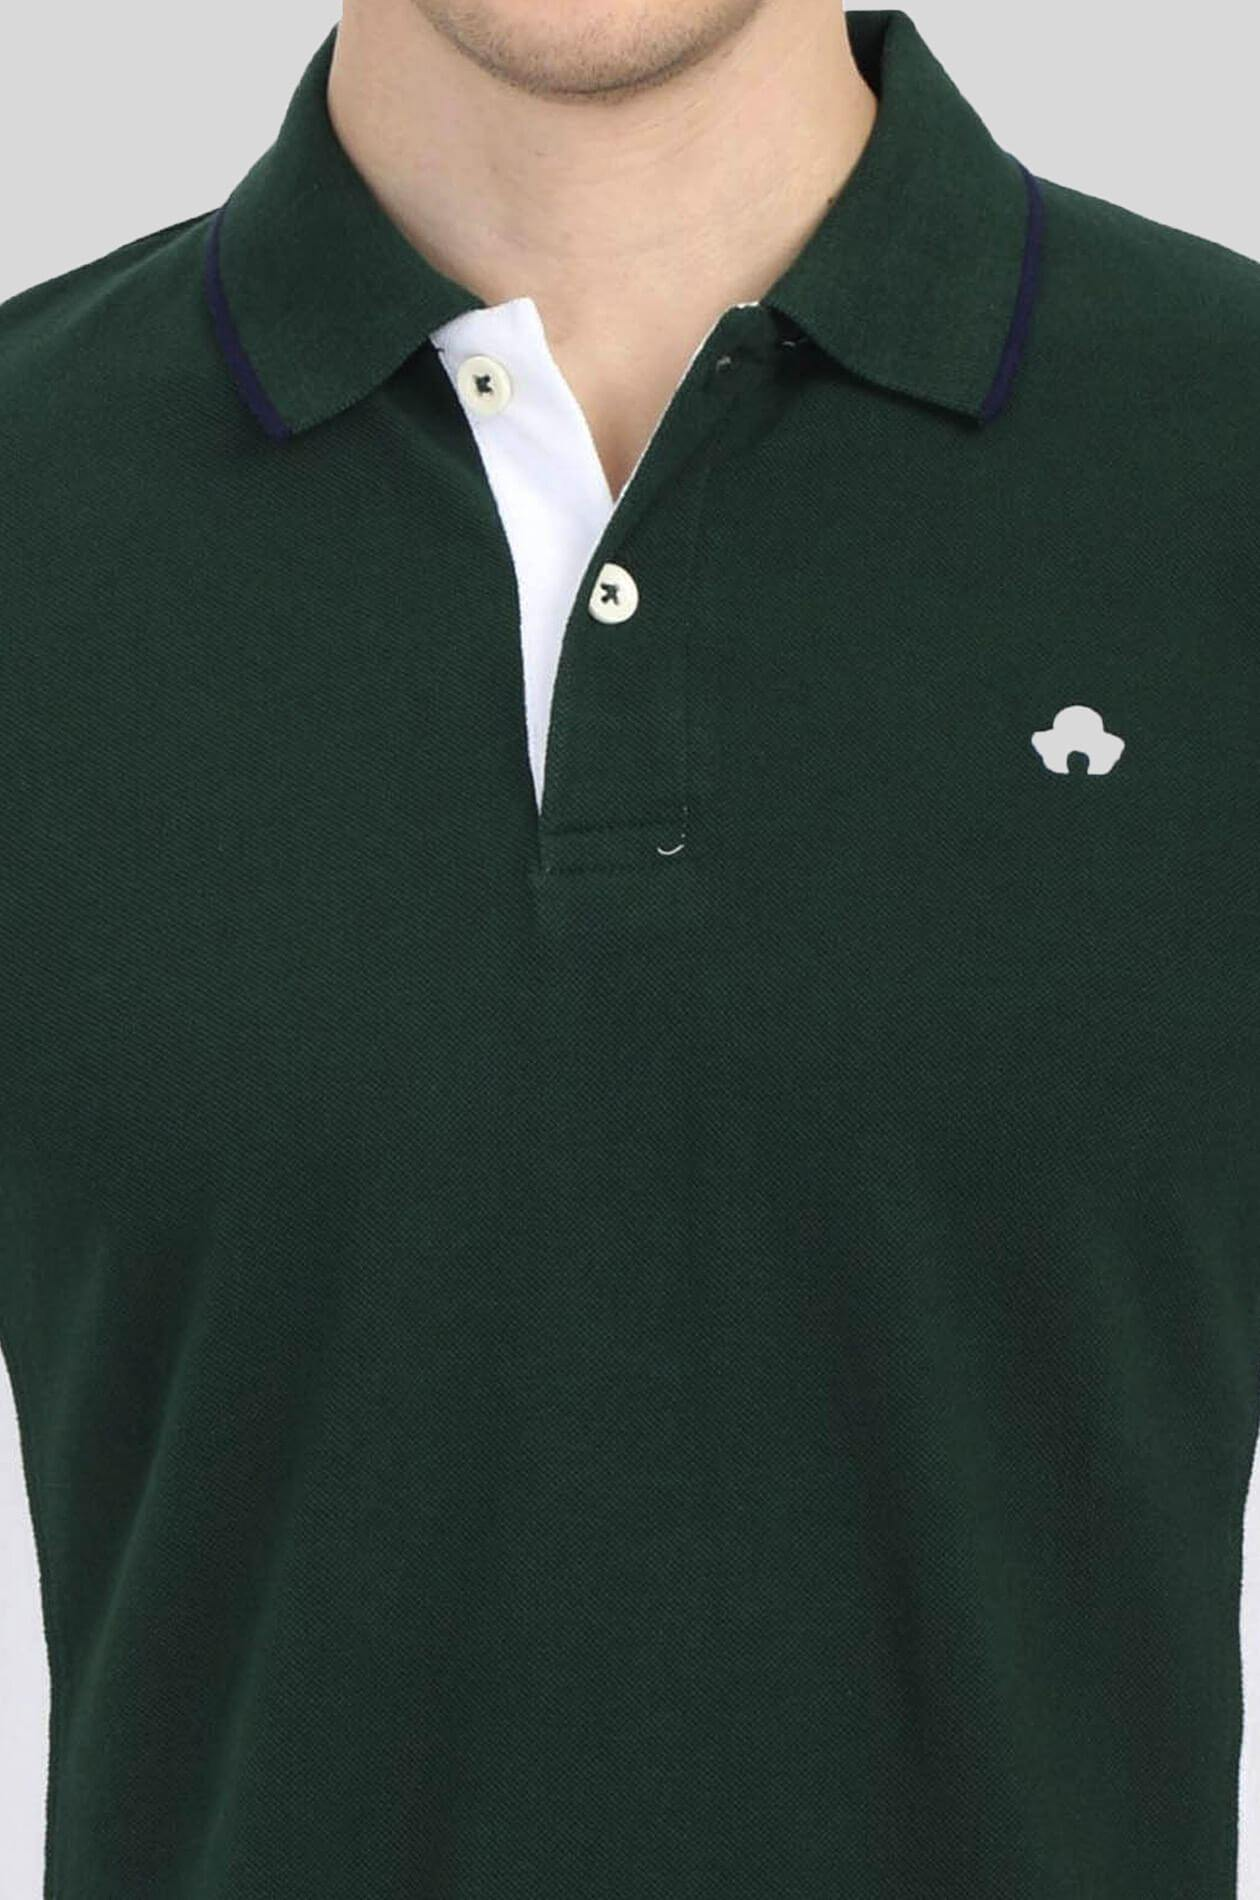 Green Mens Polo T-Shirt - GOOSEBERY